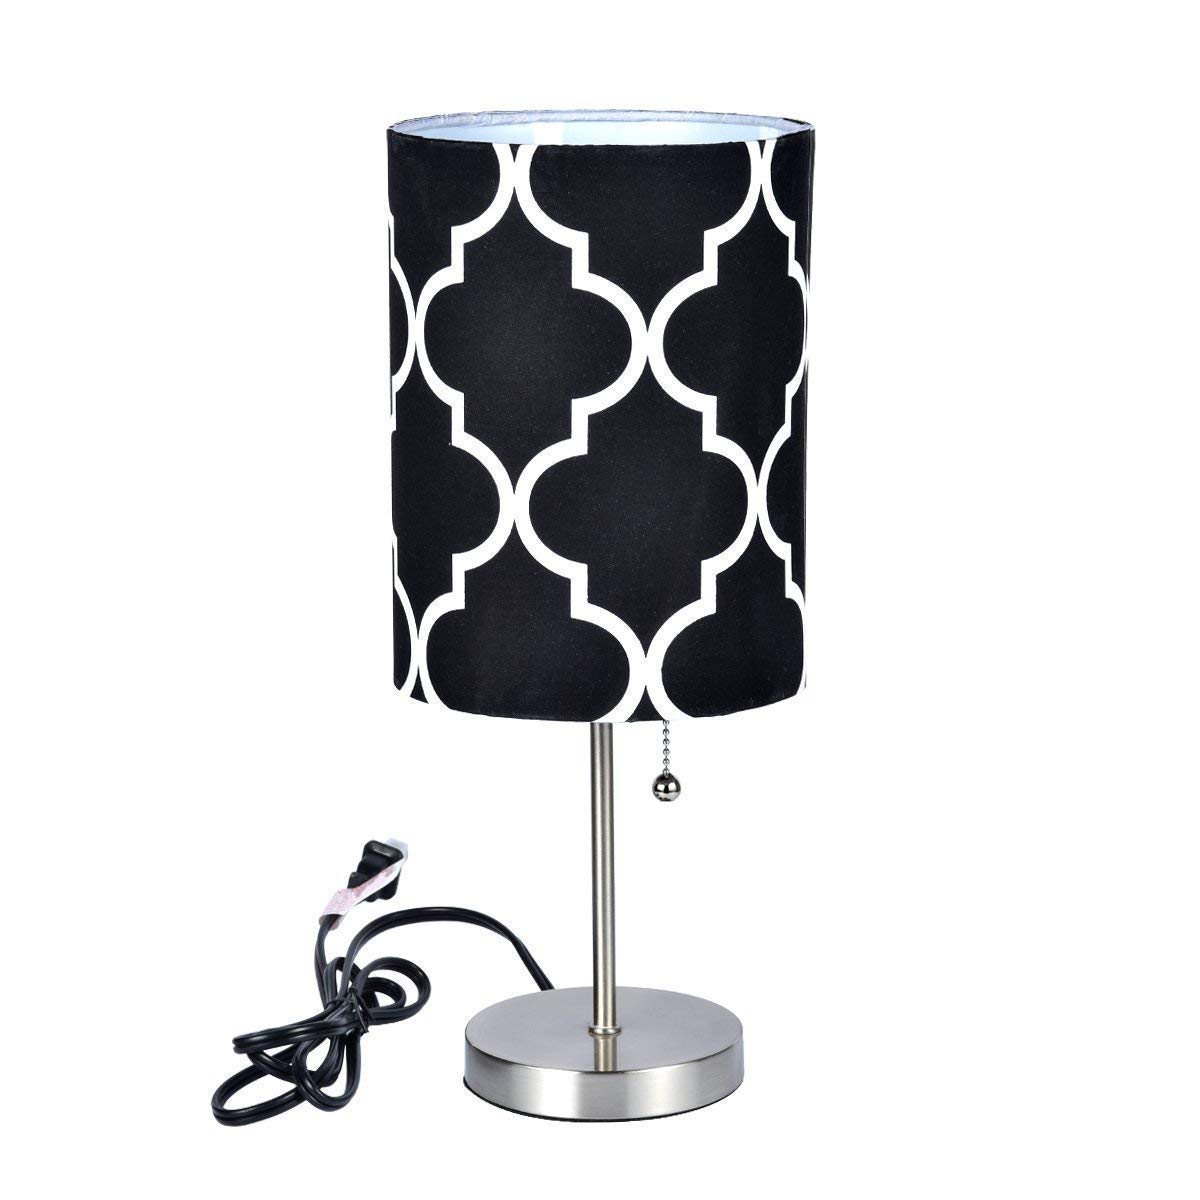 Bedside Table Lamp | Minimalist Table Lamp Bedside Desk Lamp with Round Flaxen Fabric Shade and Pull Chain Switch for Bedroom, Dresser, Living Room, Kids Room, College Dorm, Coffee Table, Bookcase